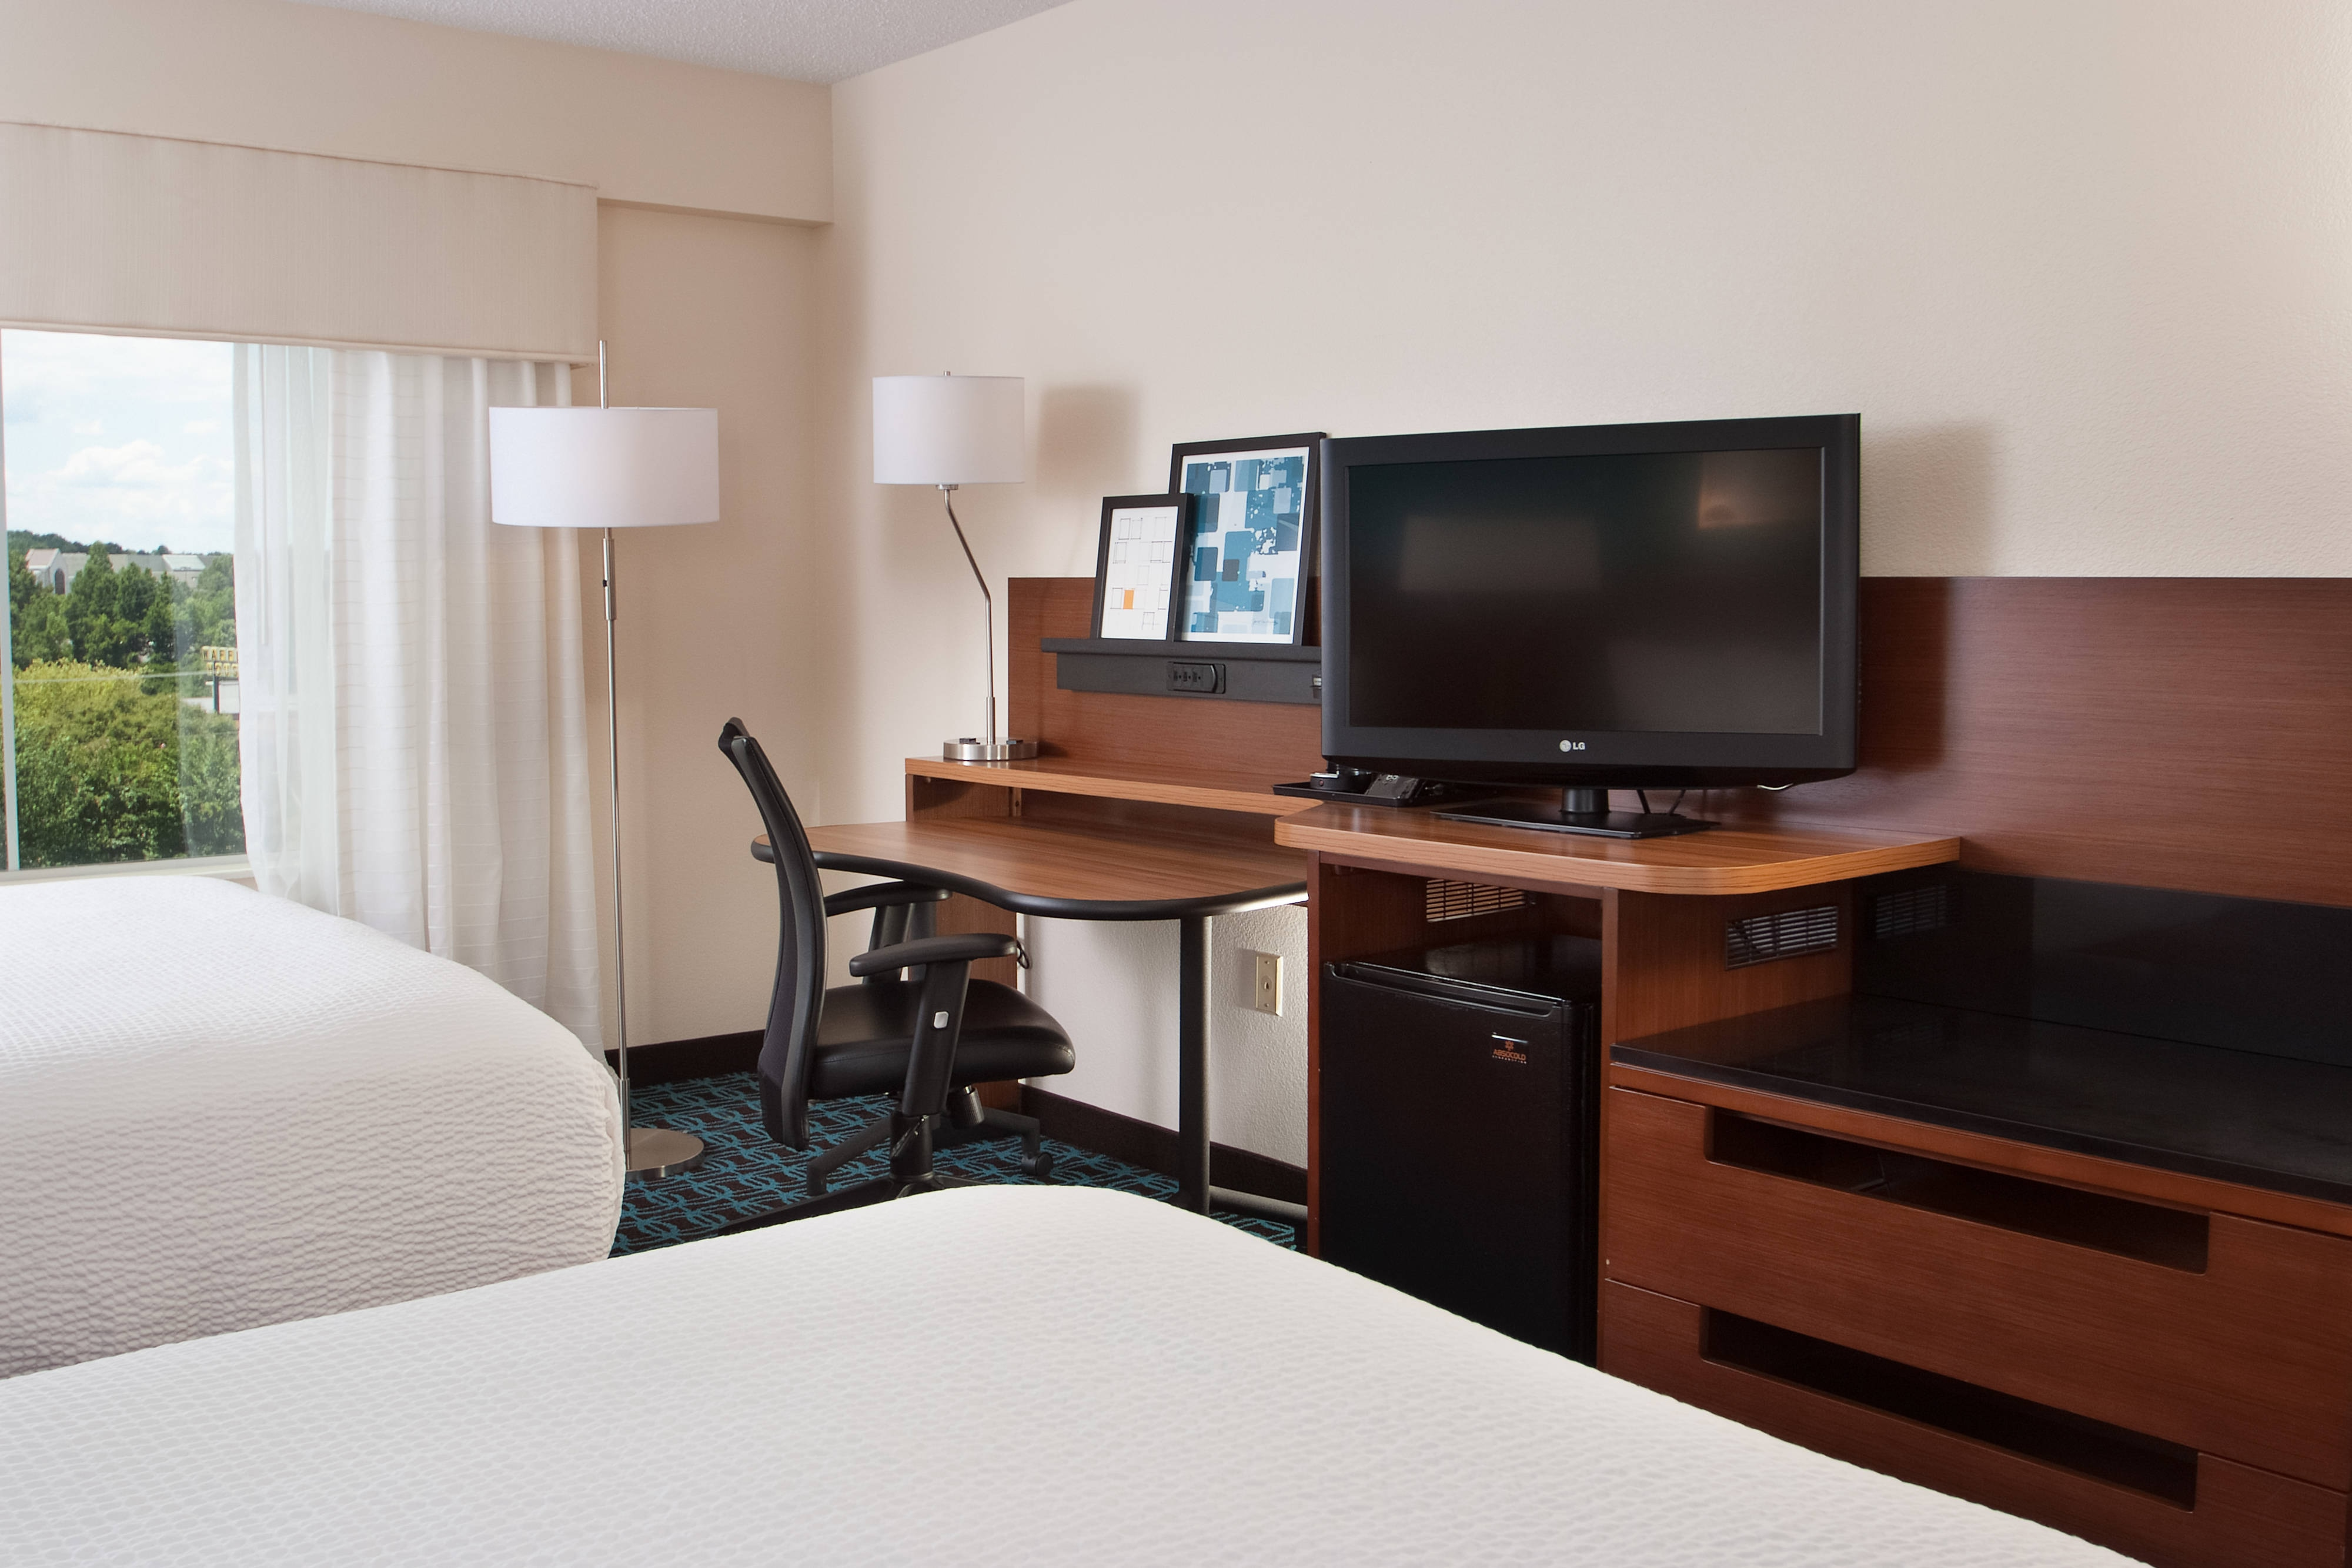 Hotel near CLT with free parking and breakfast